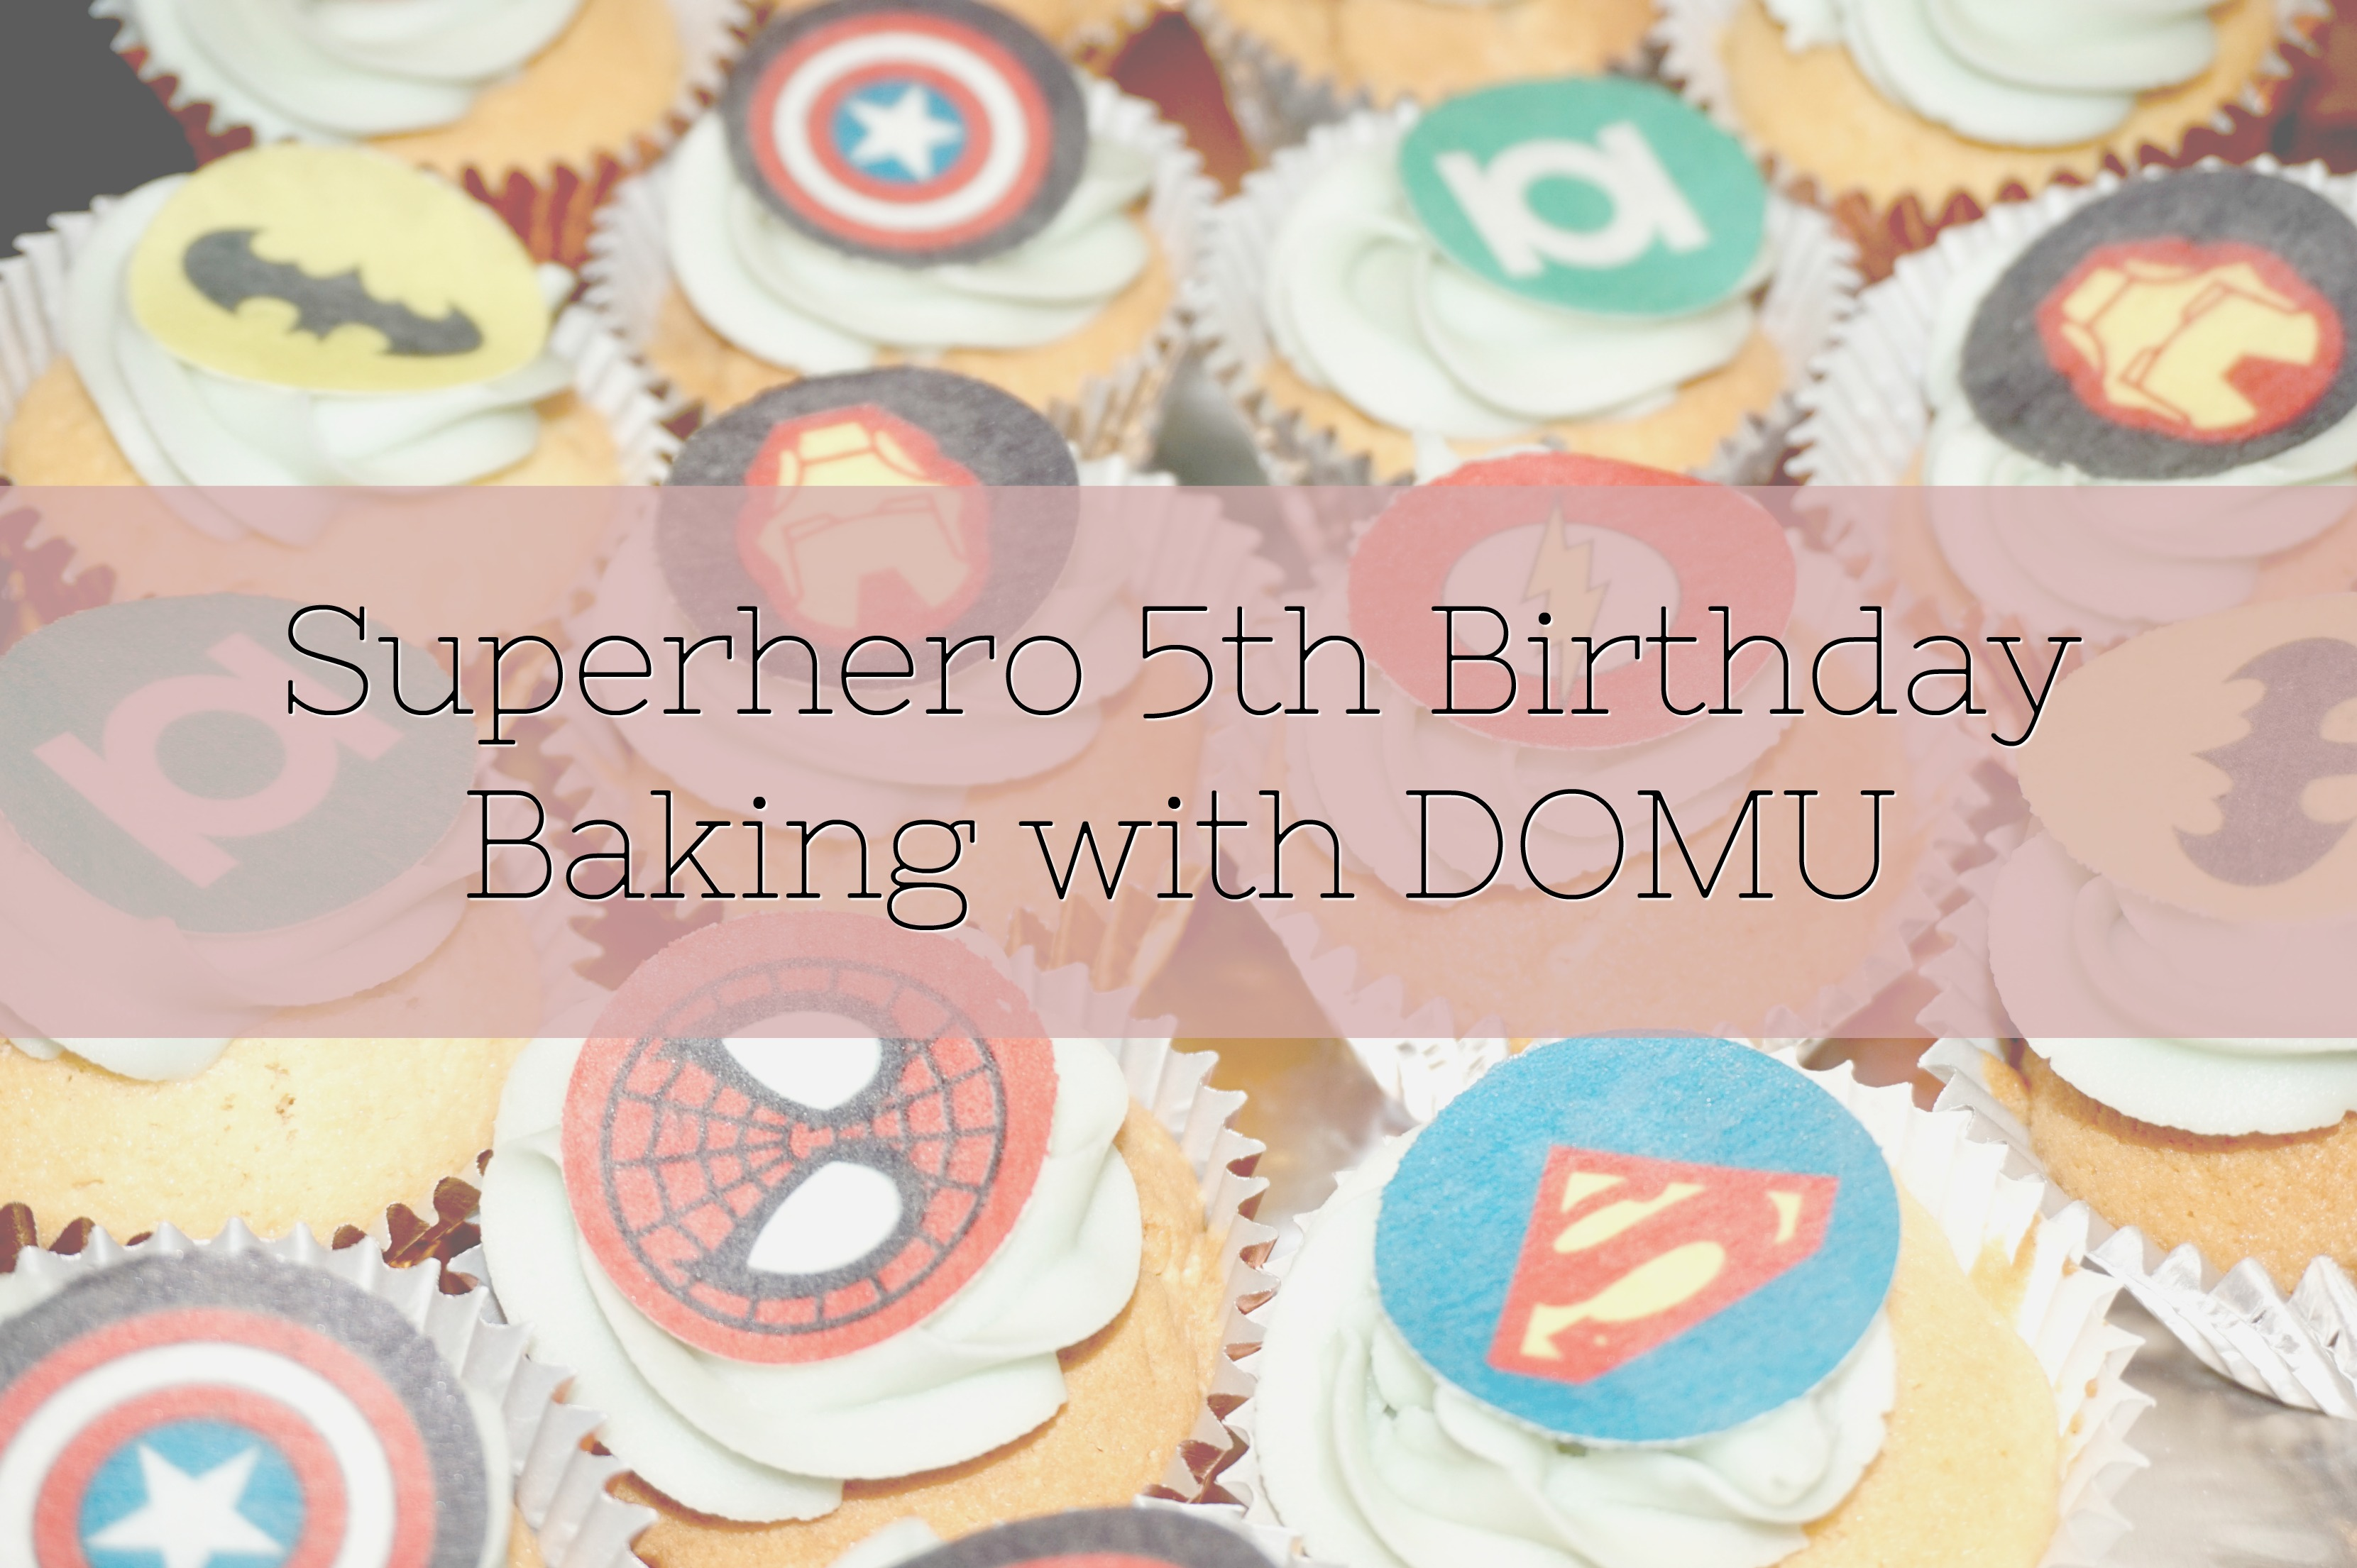 baking with domu title